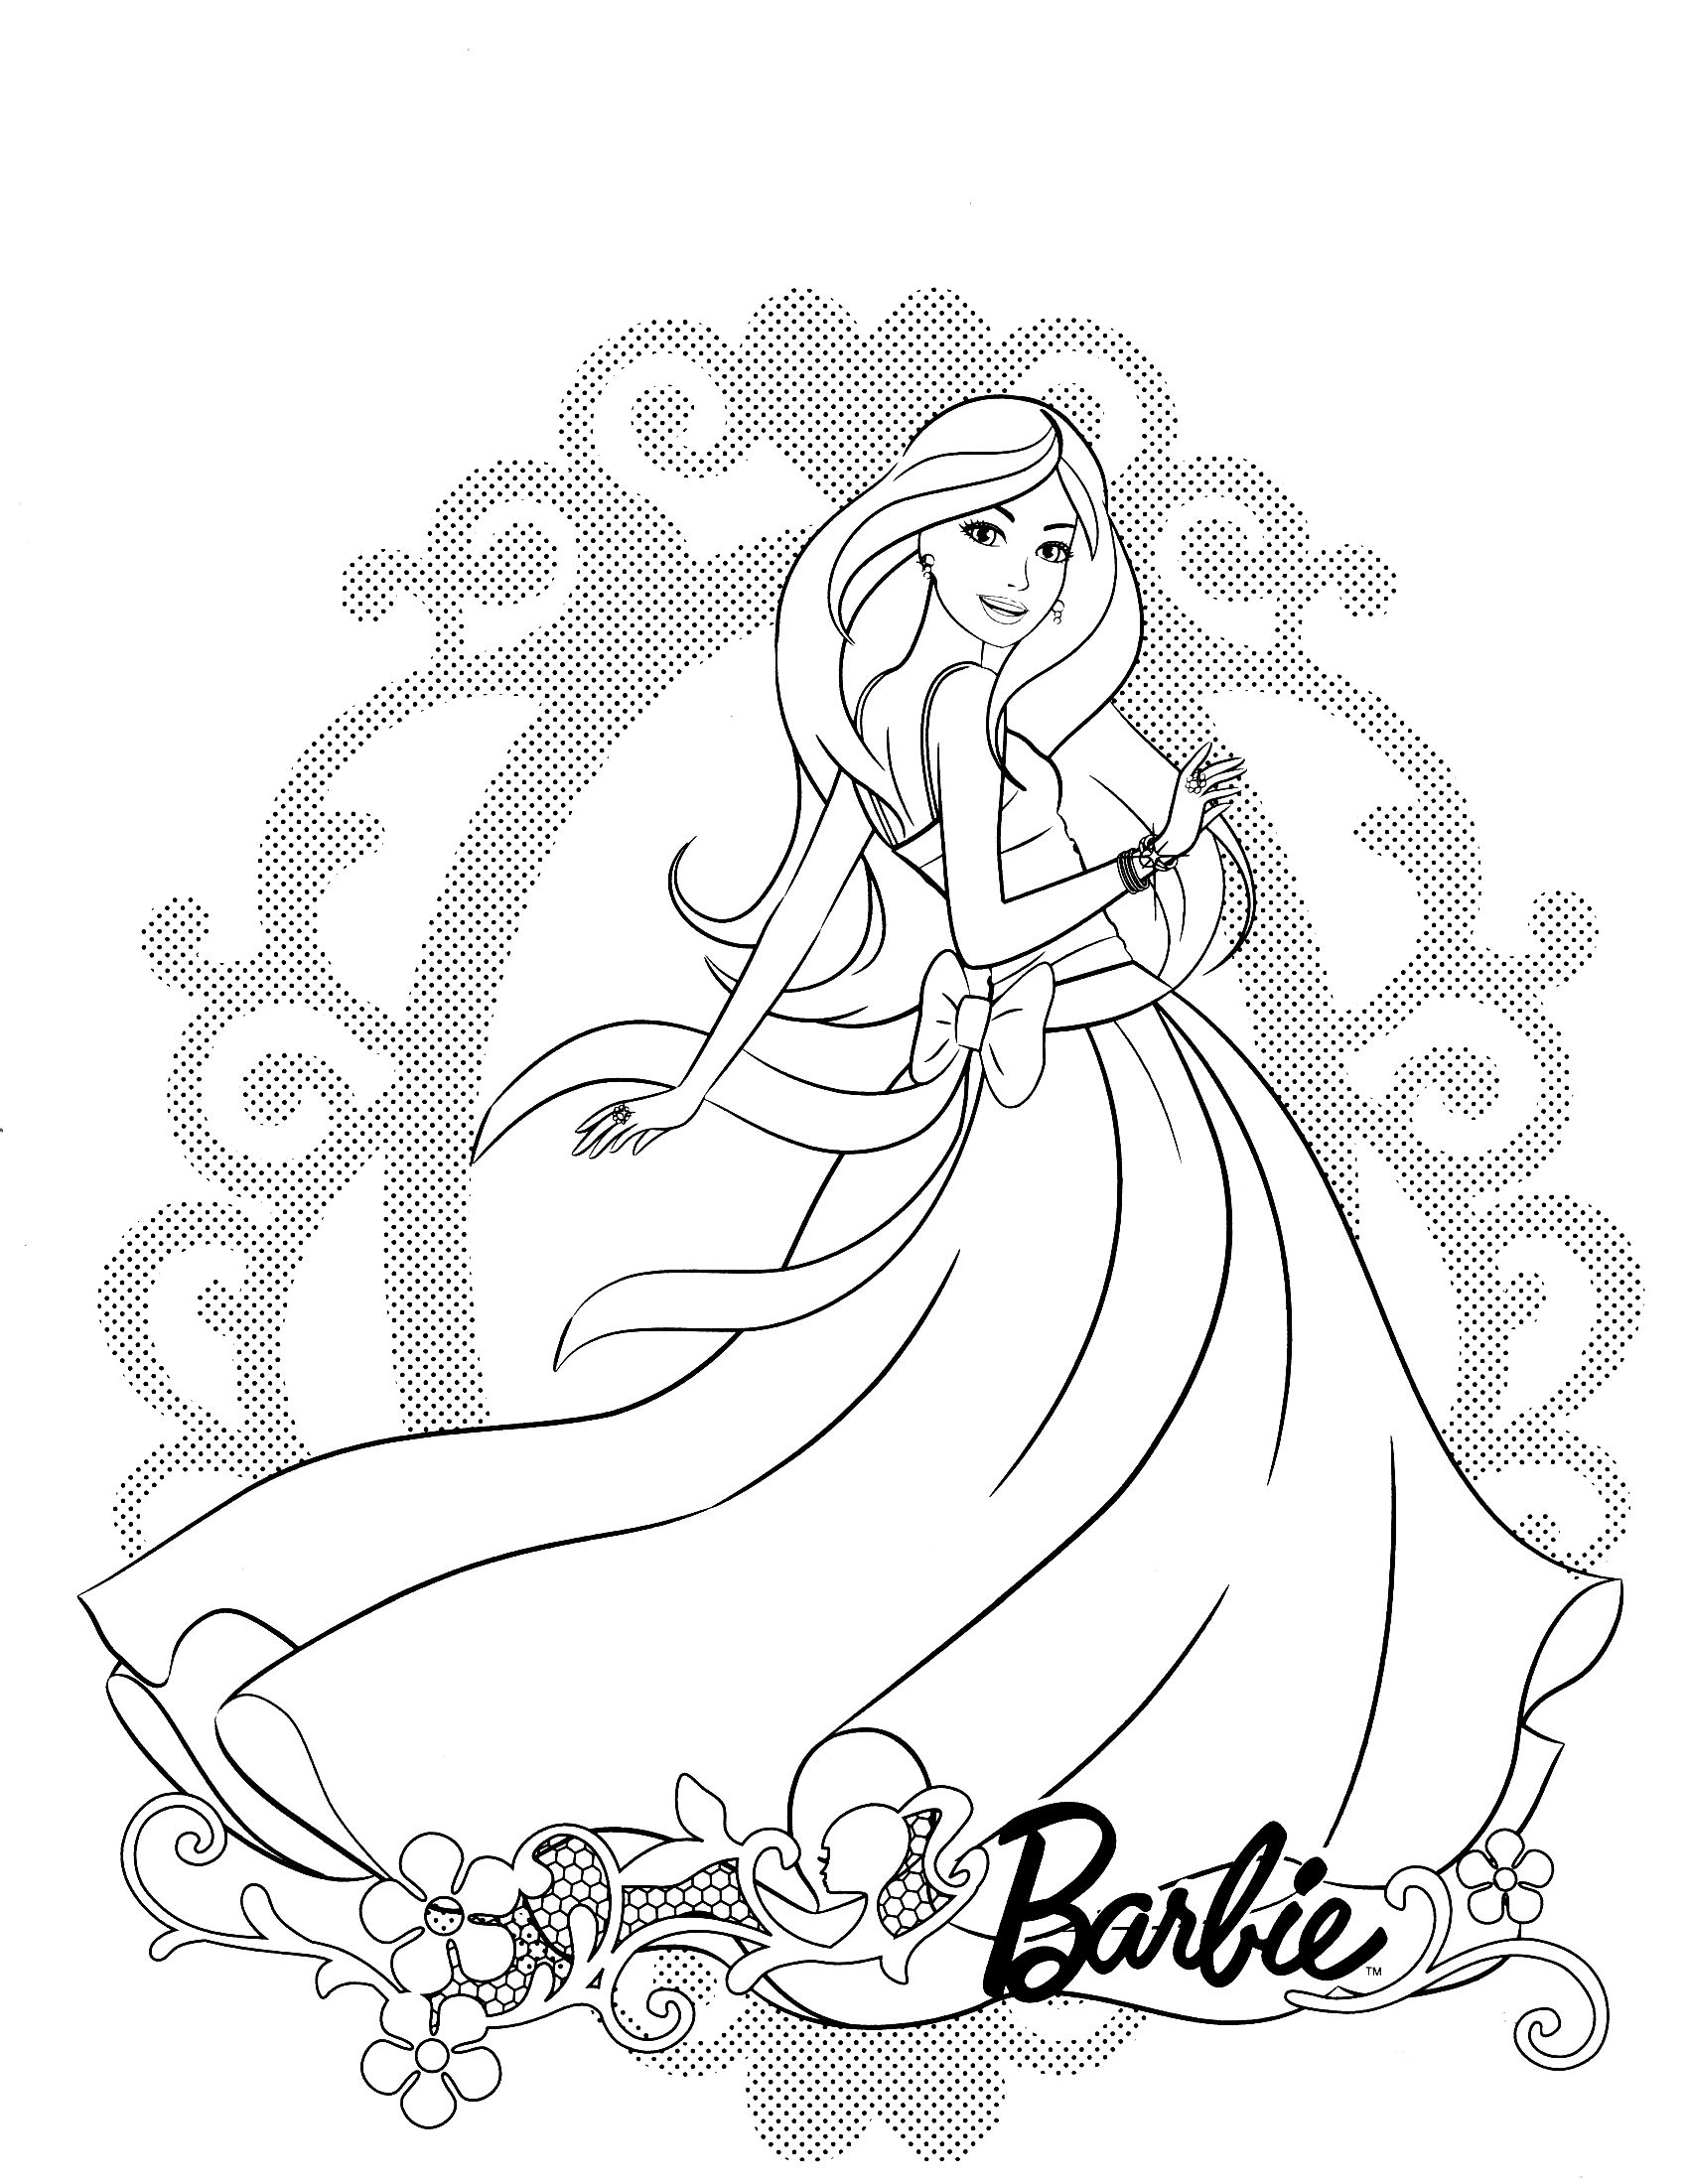 barbie dream house coloring pages coloring pages wallpaper - Barbie Coloring Page